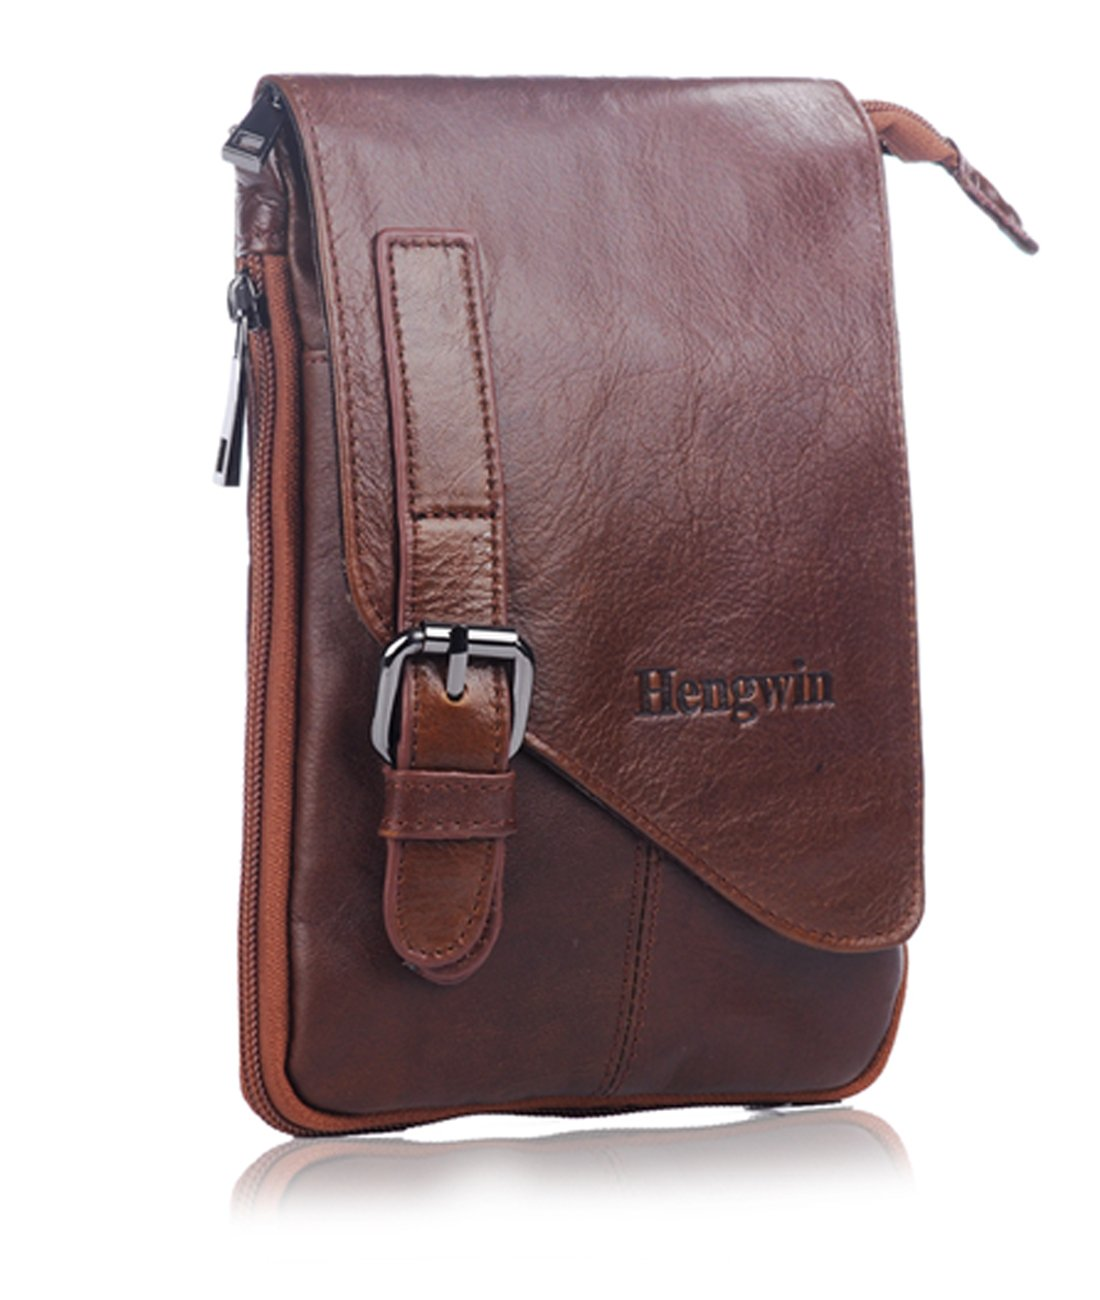 Hwin Vertical Leather Case Pouch Holster Belt Clip for iPhone 6 Plus LG G4 Note 5,Men Crossbody Shoulder Bag+Free Keychain(Coffee)